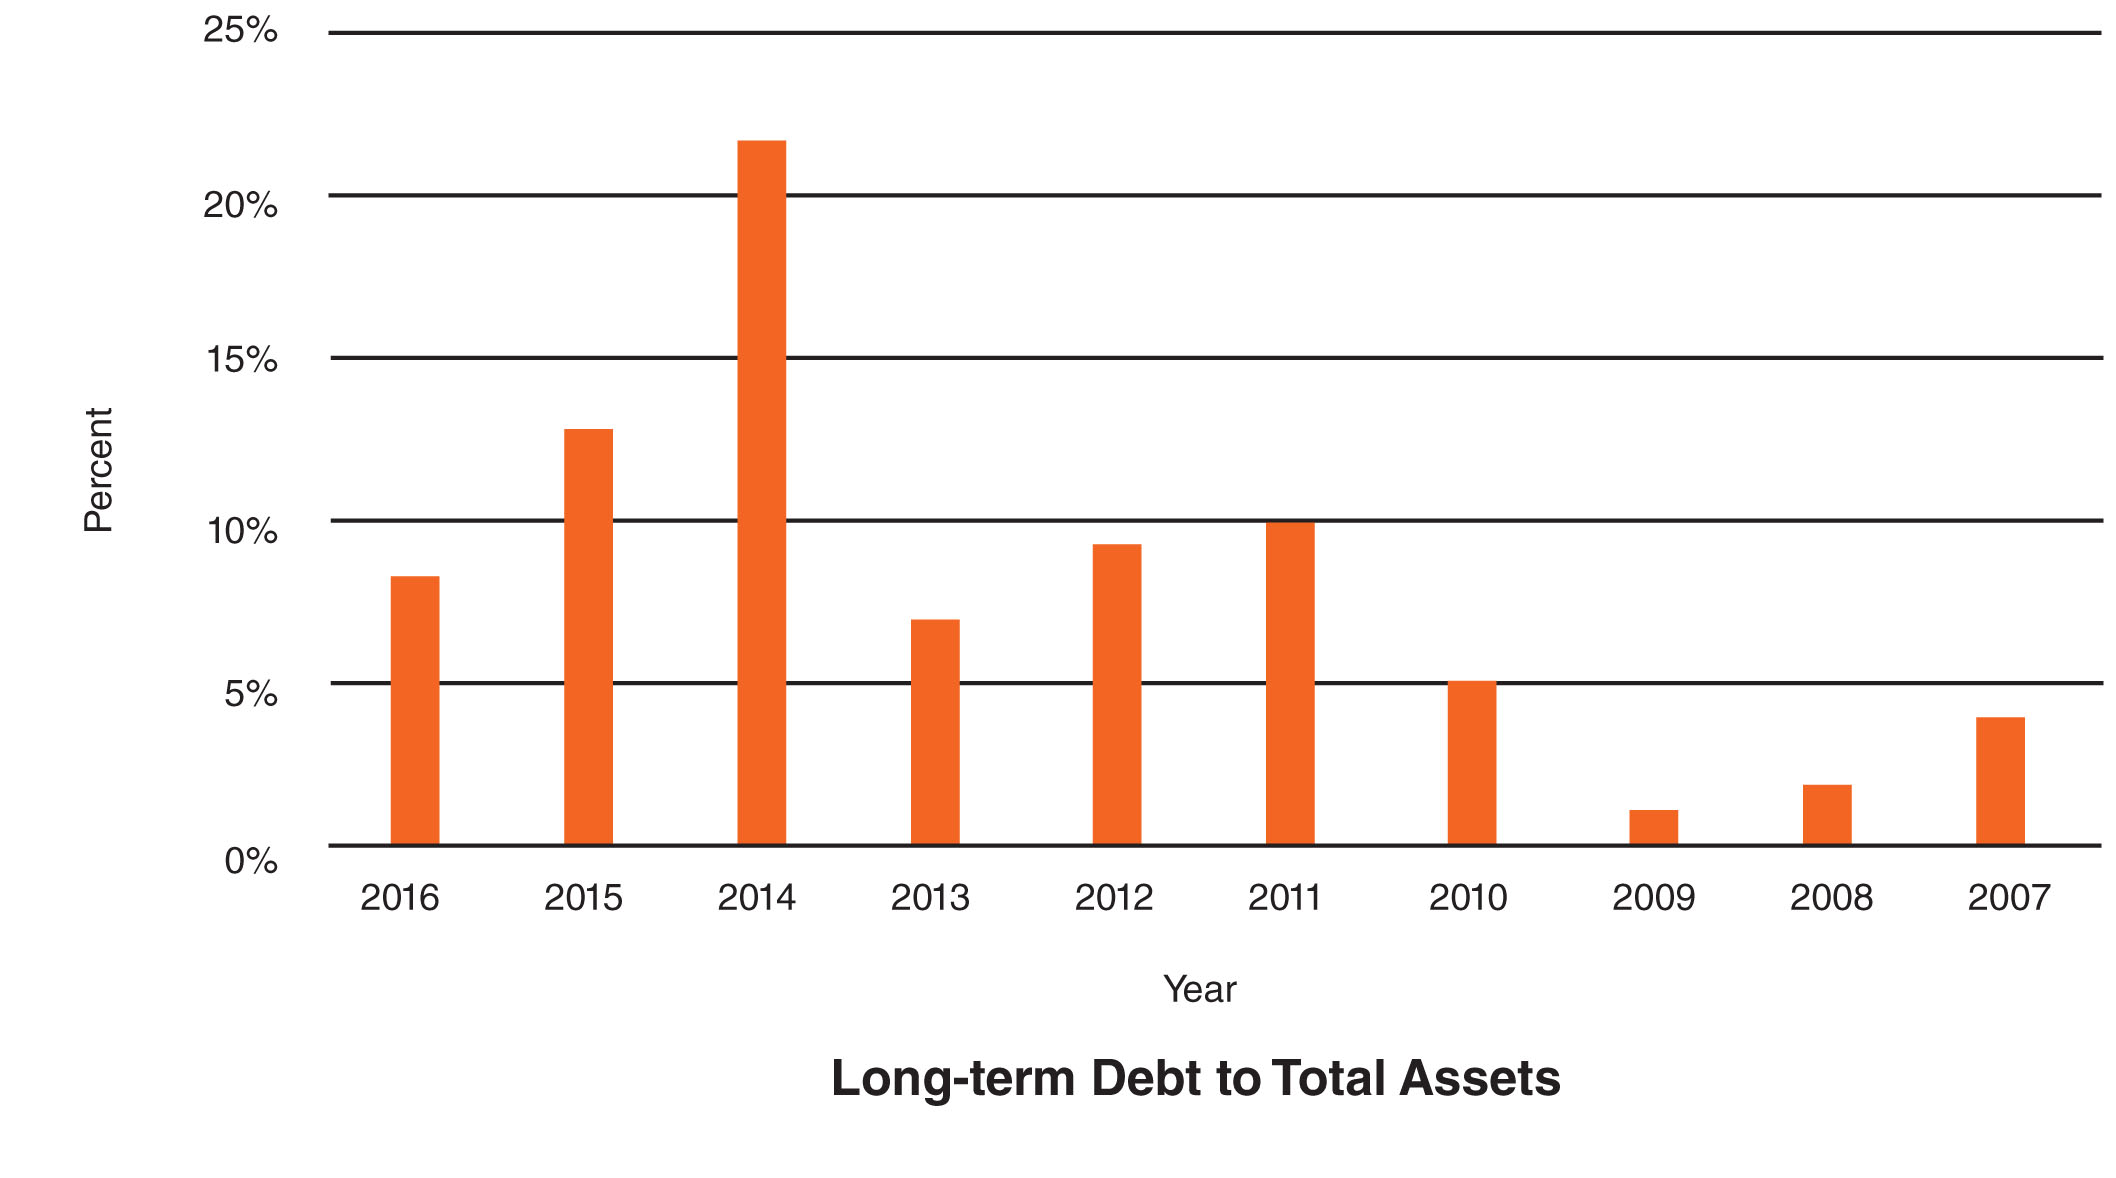 Long-term Debt to Total